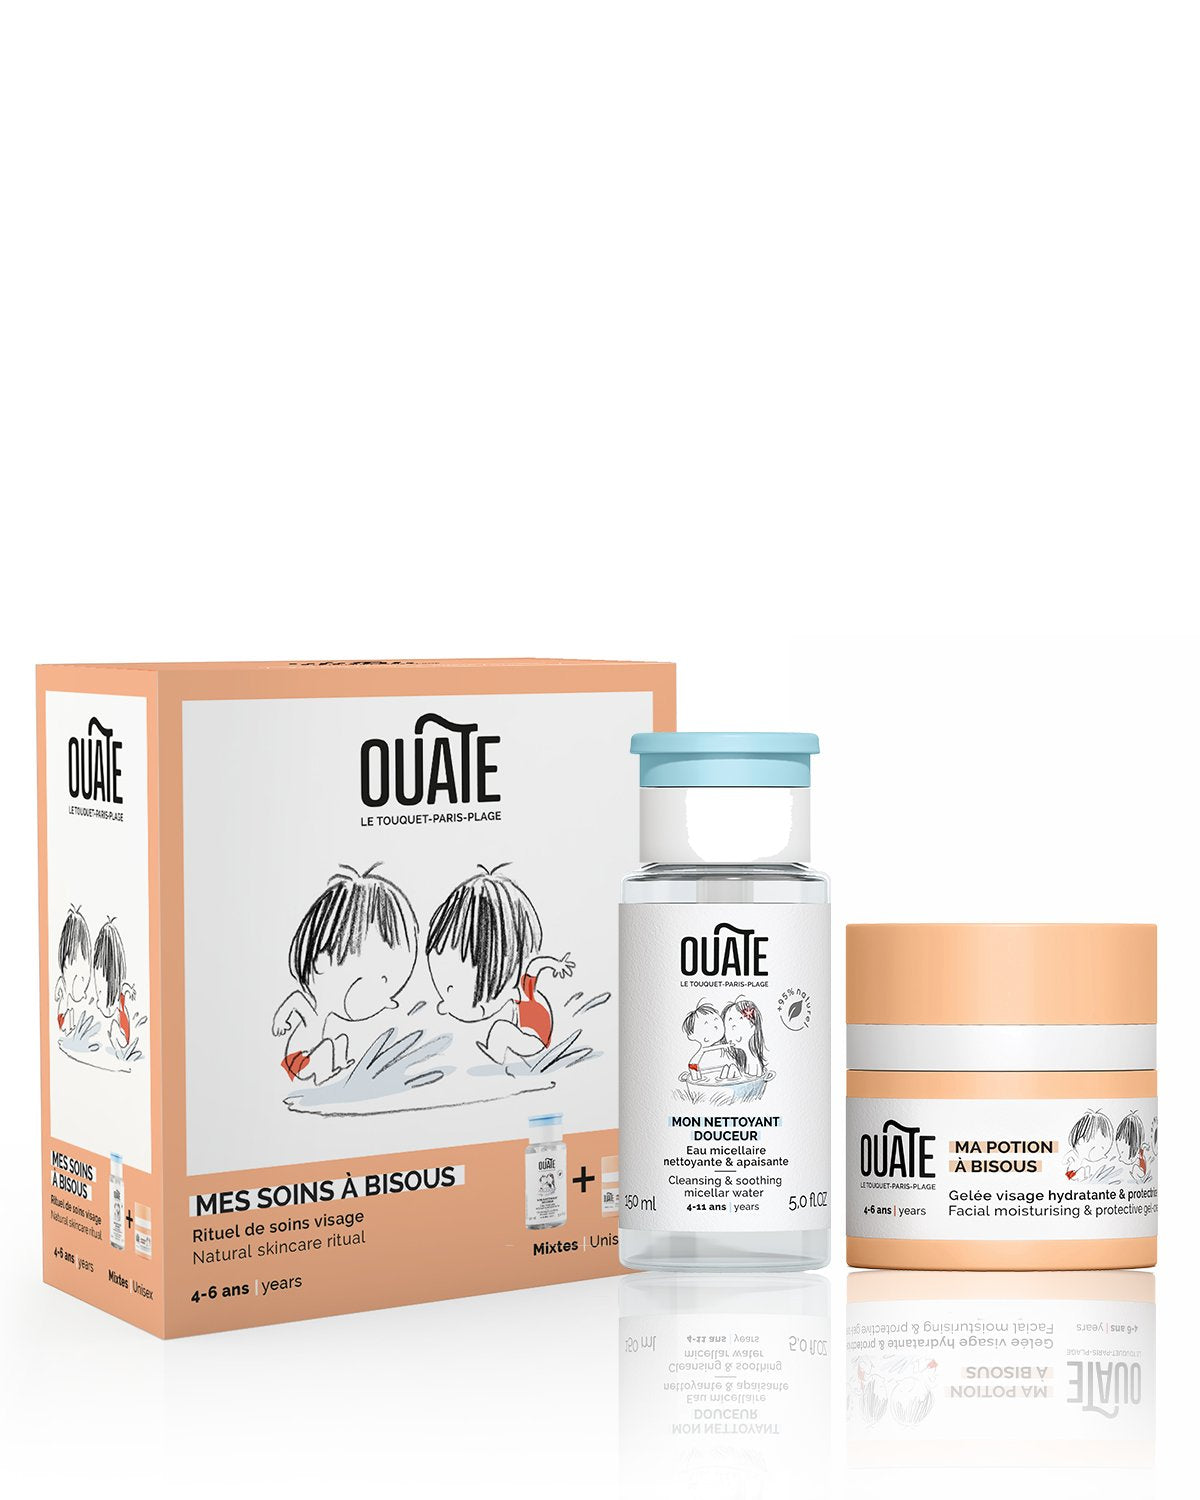 OUATE Duo Set MY KISSABLE SKINCARE ROUTINE Unisex (ages 4-6)